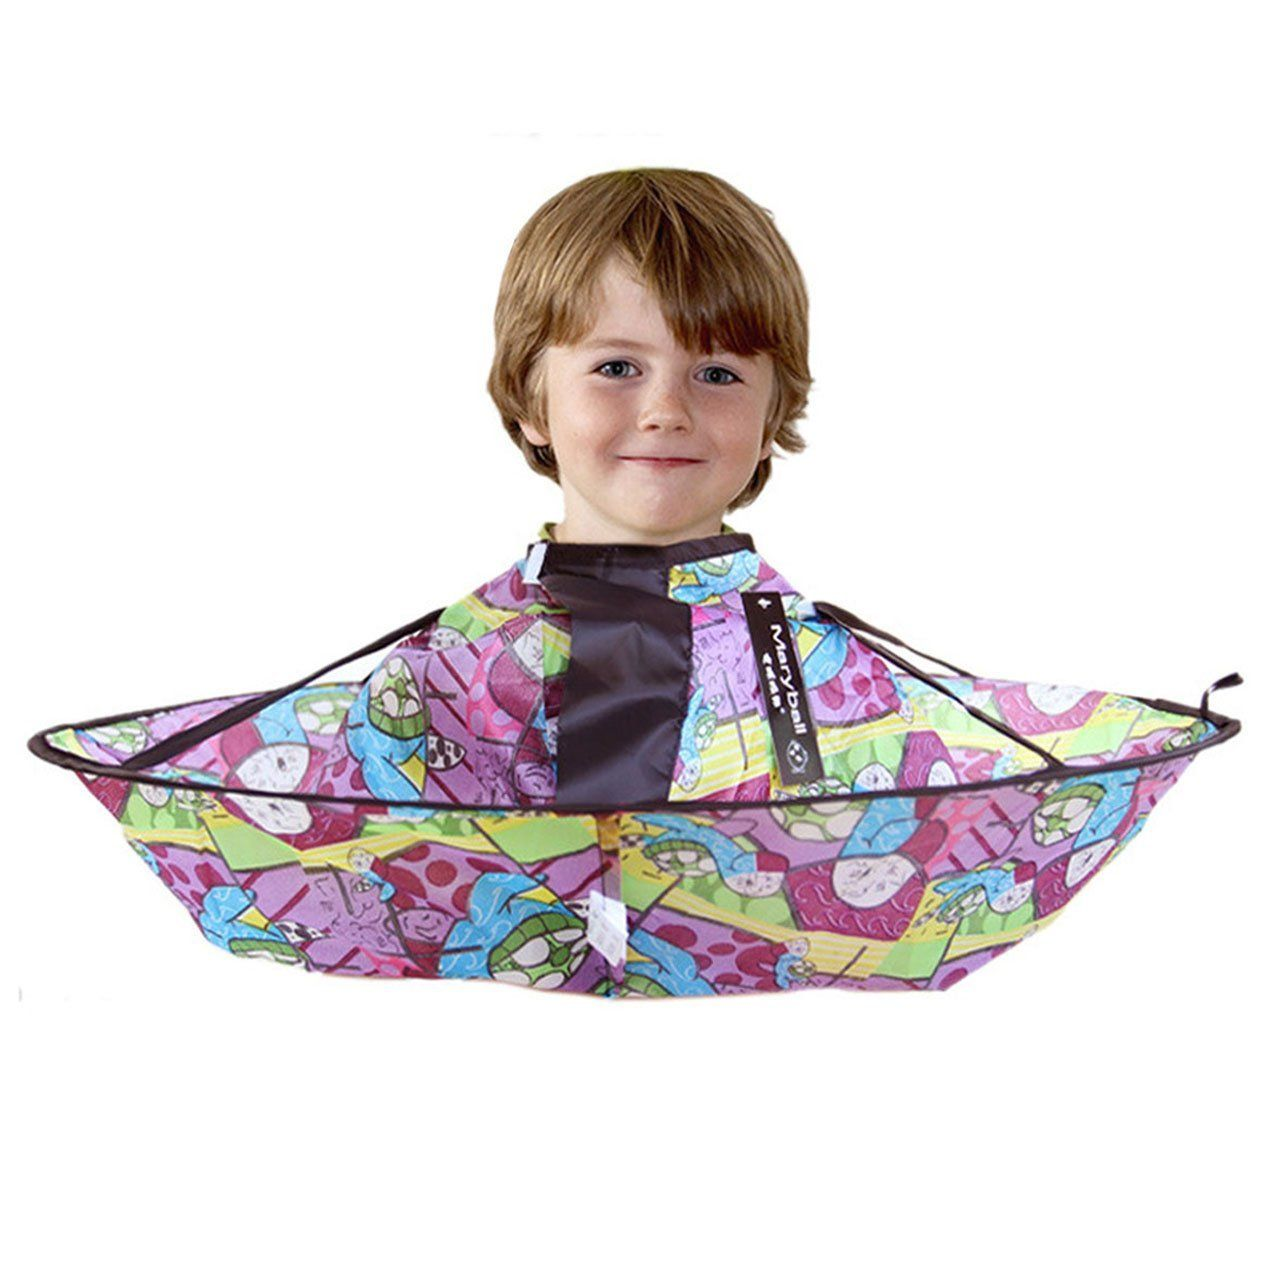 Ccbeauty Children Barber Cape For Kid Haircut Umbrella Catcher Hairdresser And A Waterproof 2